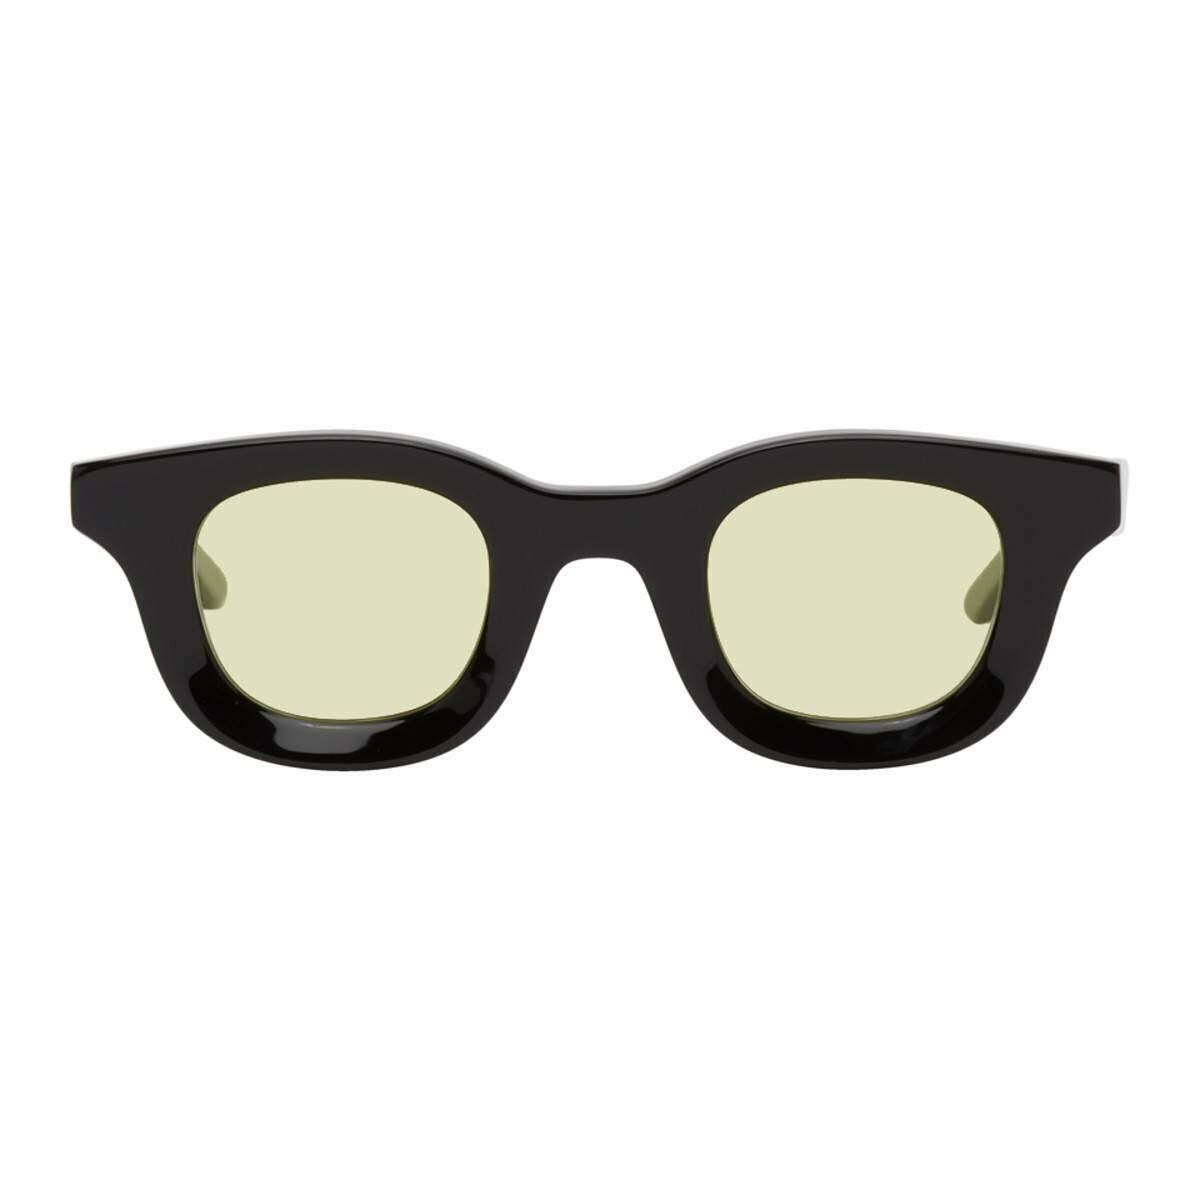 Rhude Black and Yellow Thierry Lasry Rhevision Edition 101 Sunglasses Ssense USA MEN Men ACCESSORIES Mens SUNGLASSES